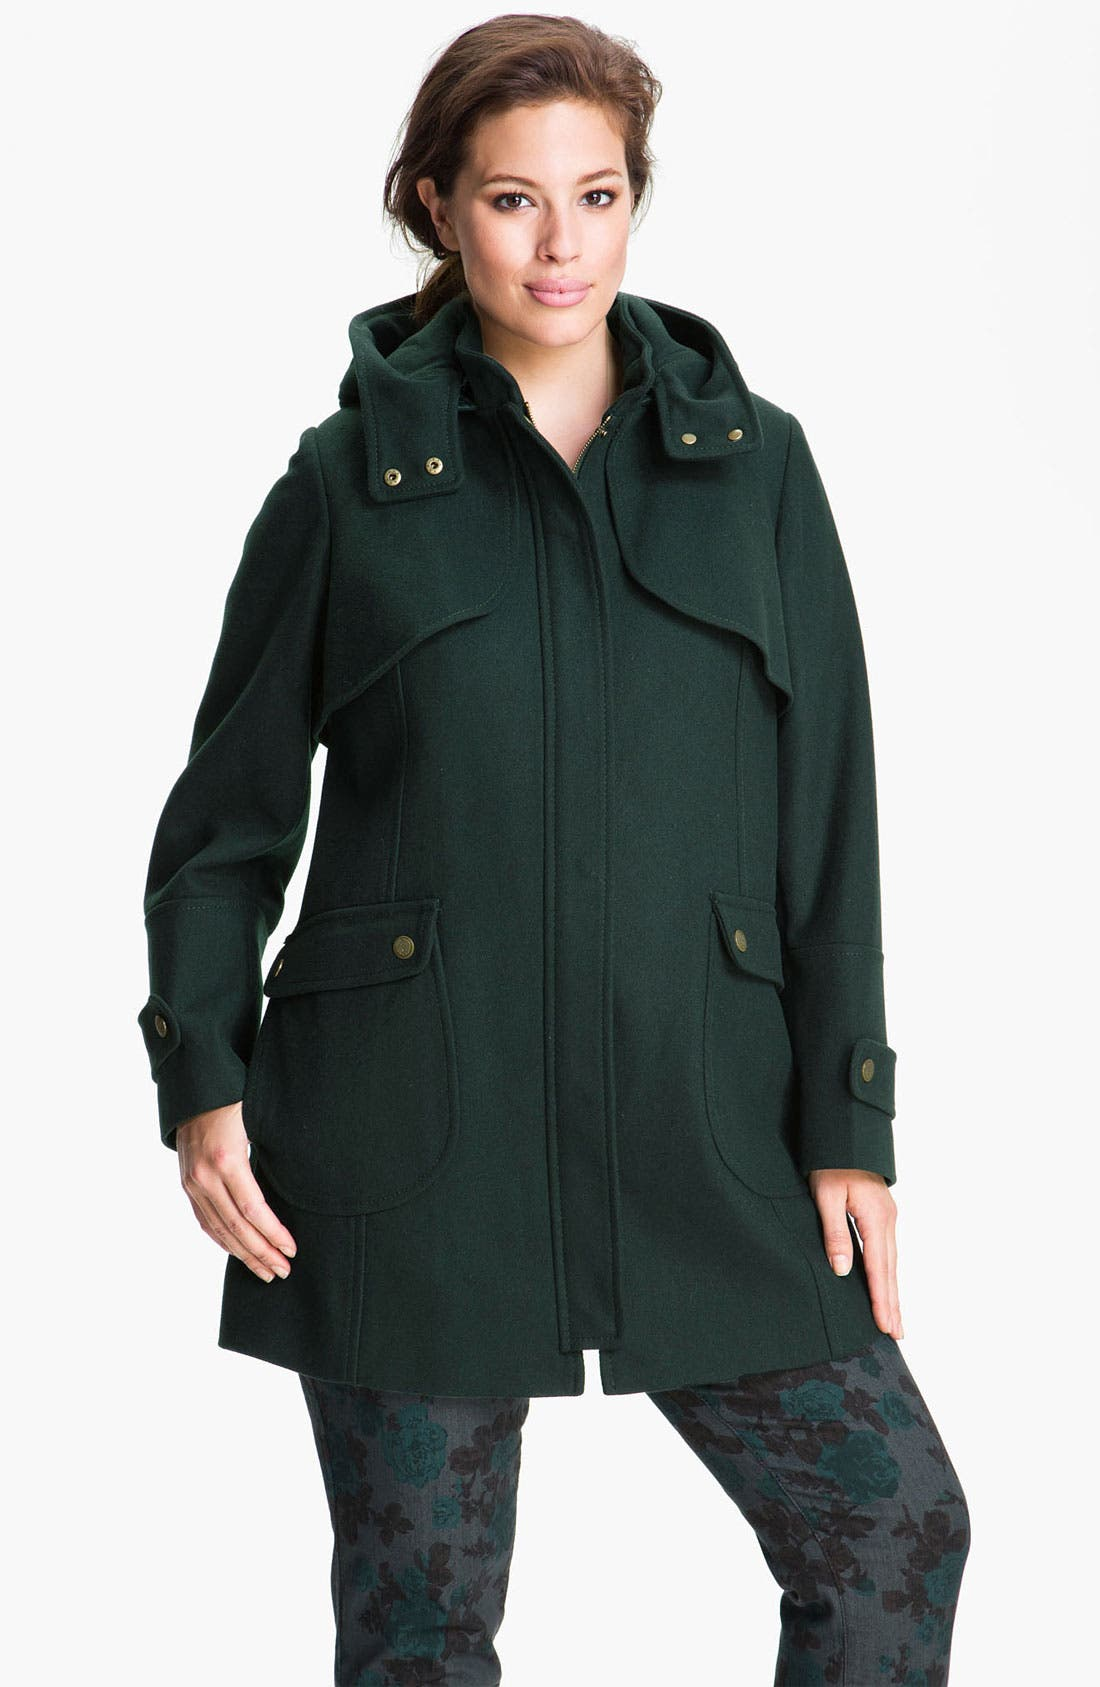 Wool Blend Jacket with Detachable Hood,                         Main,                         color, 300